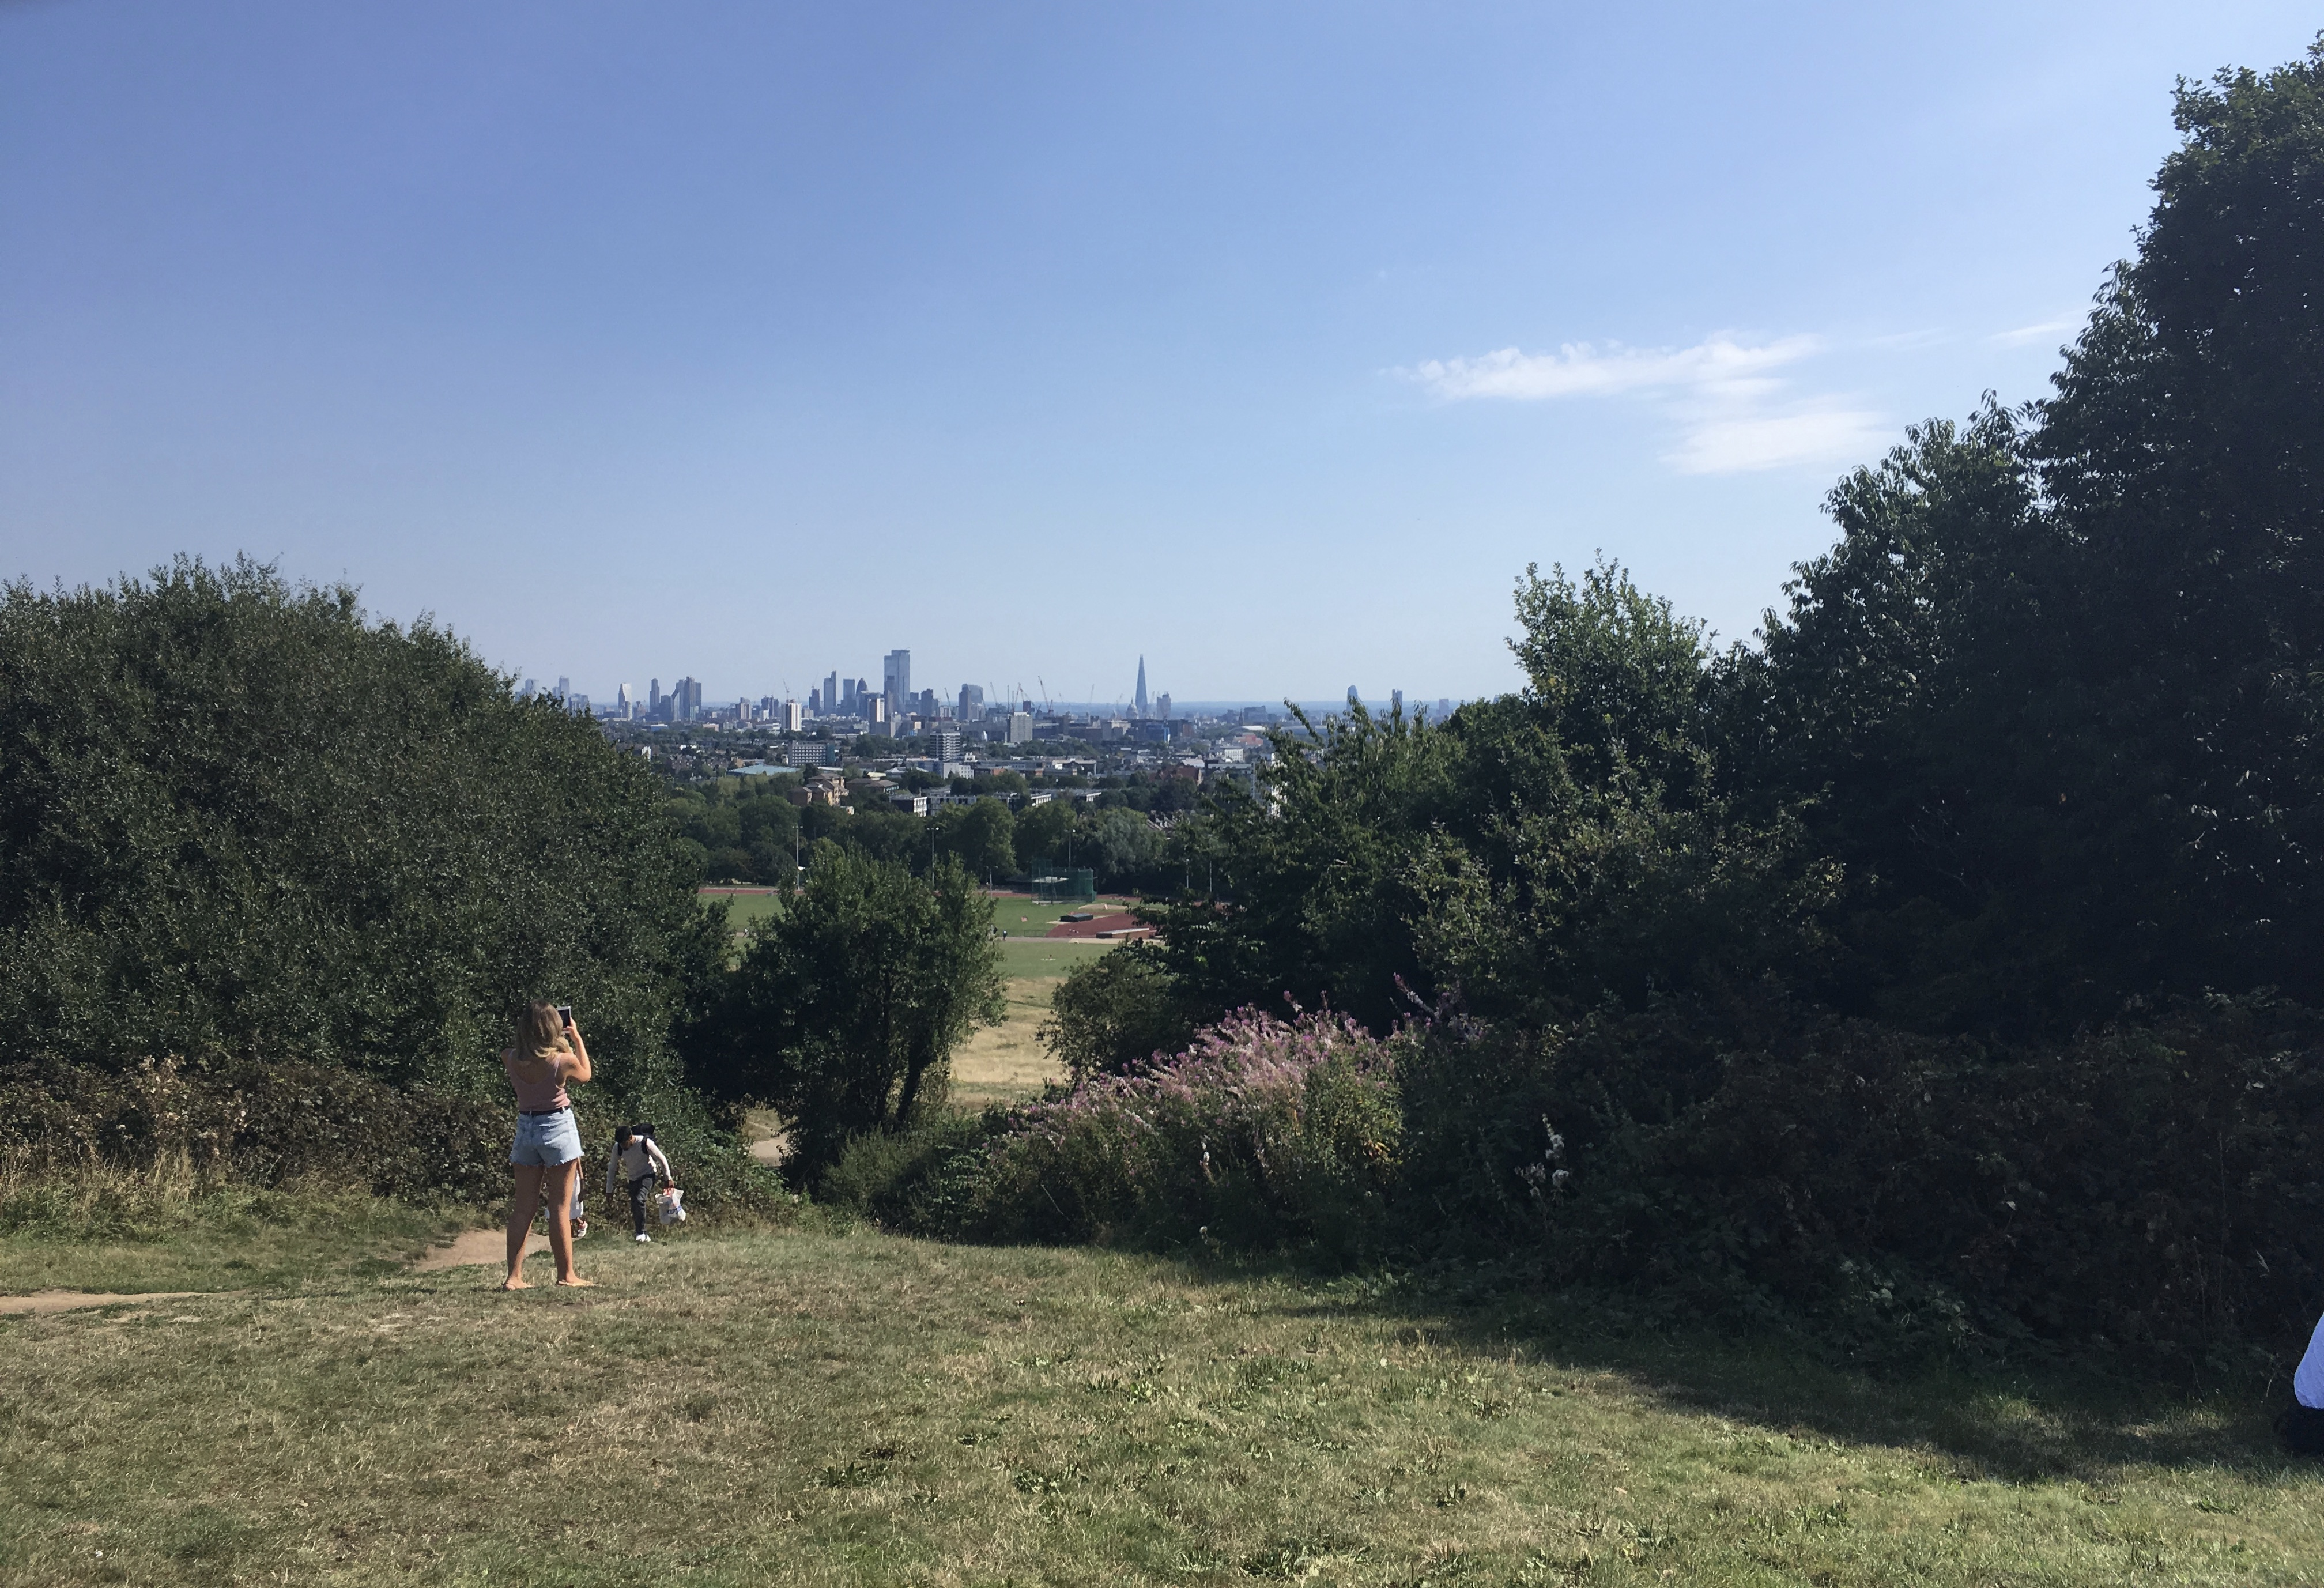 View-Parliament-Hill-Where-to-run-in-london